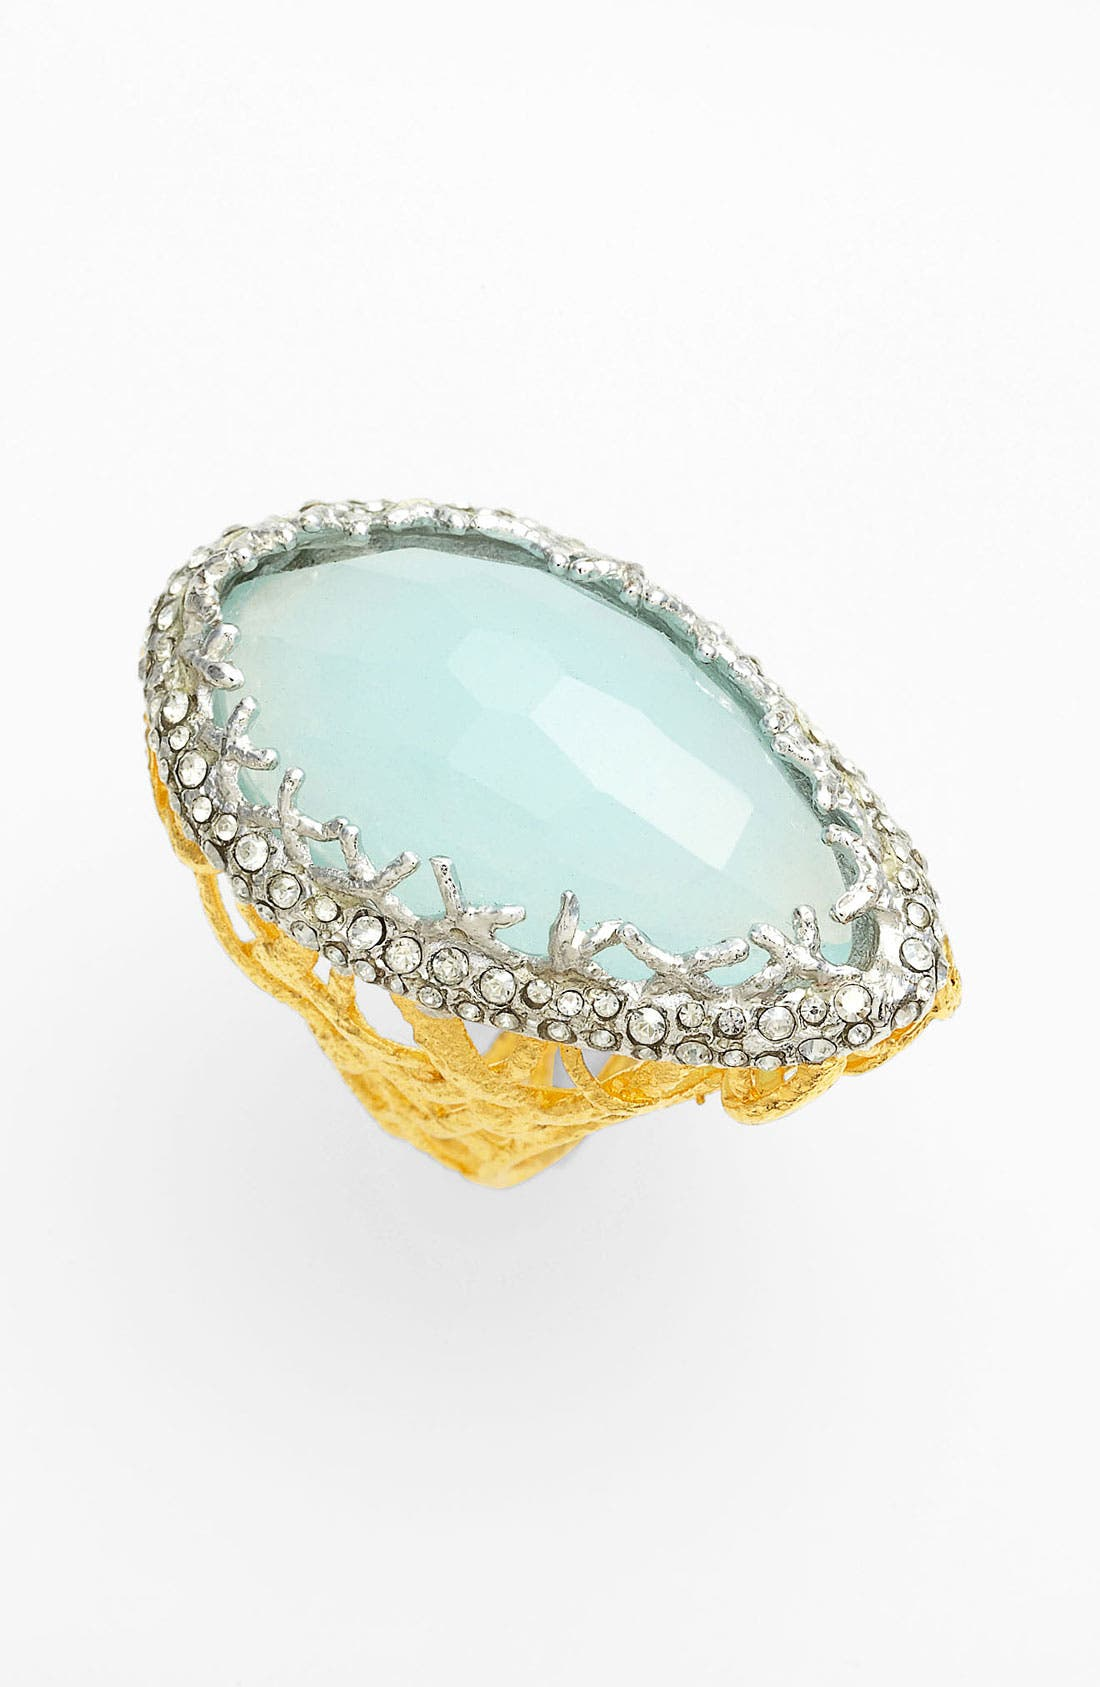 Main Image - Alexis Bittar 'Elements - Siyabona' Woven Stone Ring